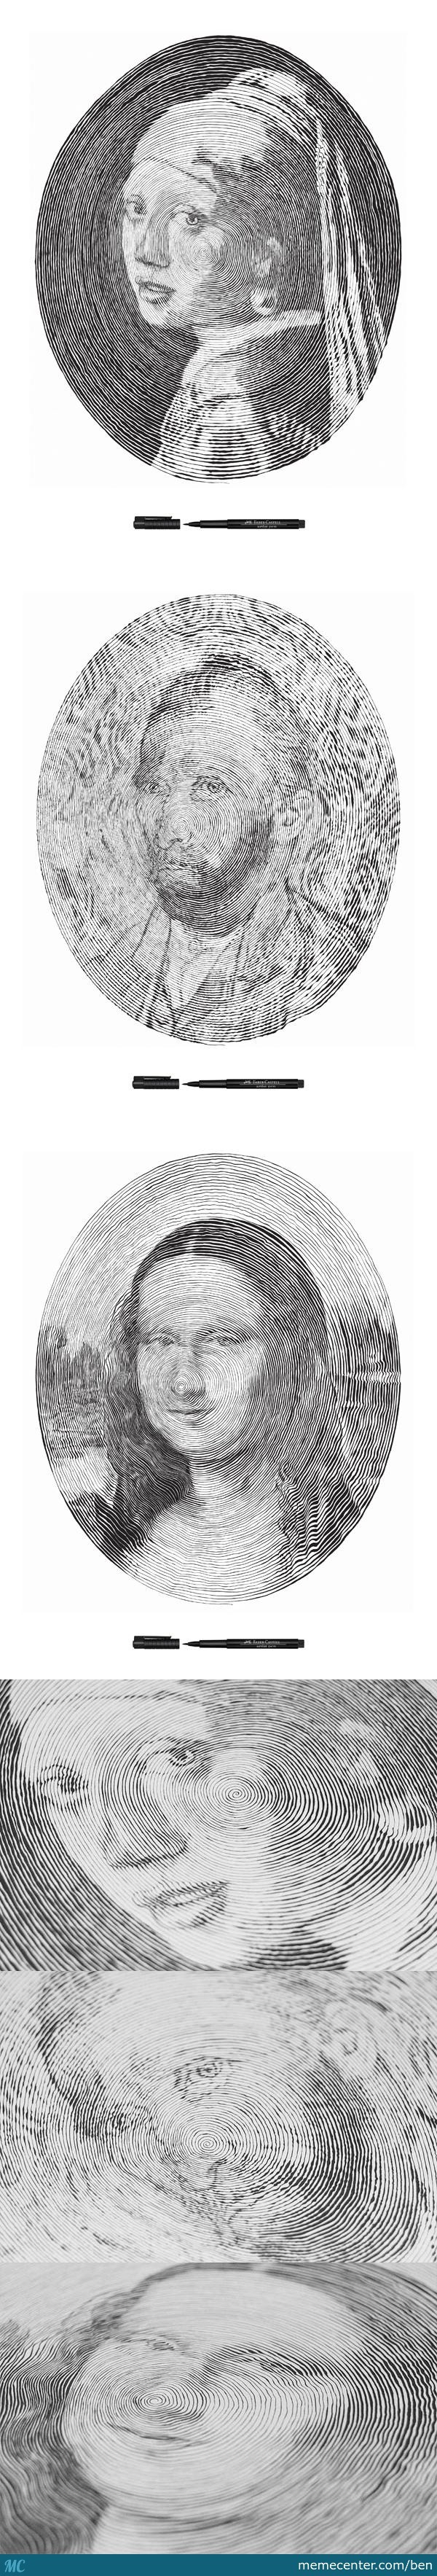 Portraits Drawn By Faber Castel Pencils By Hwee Chong